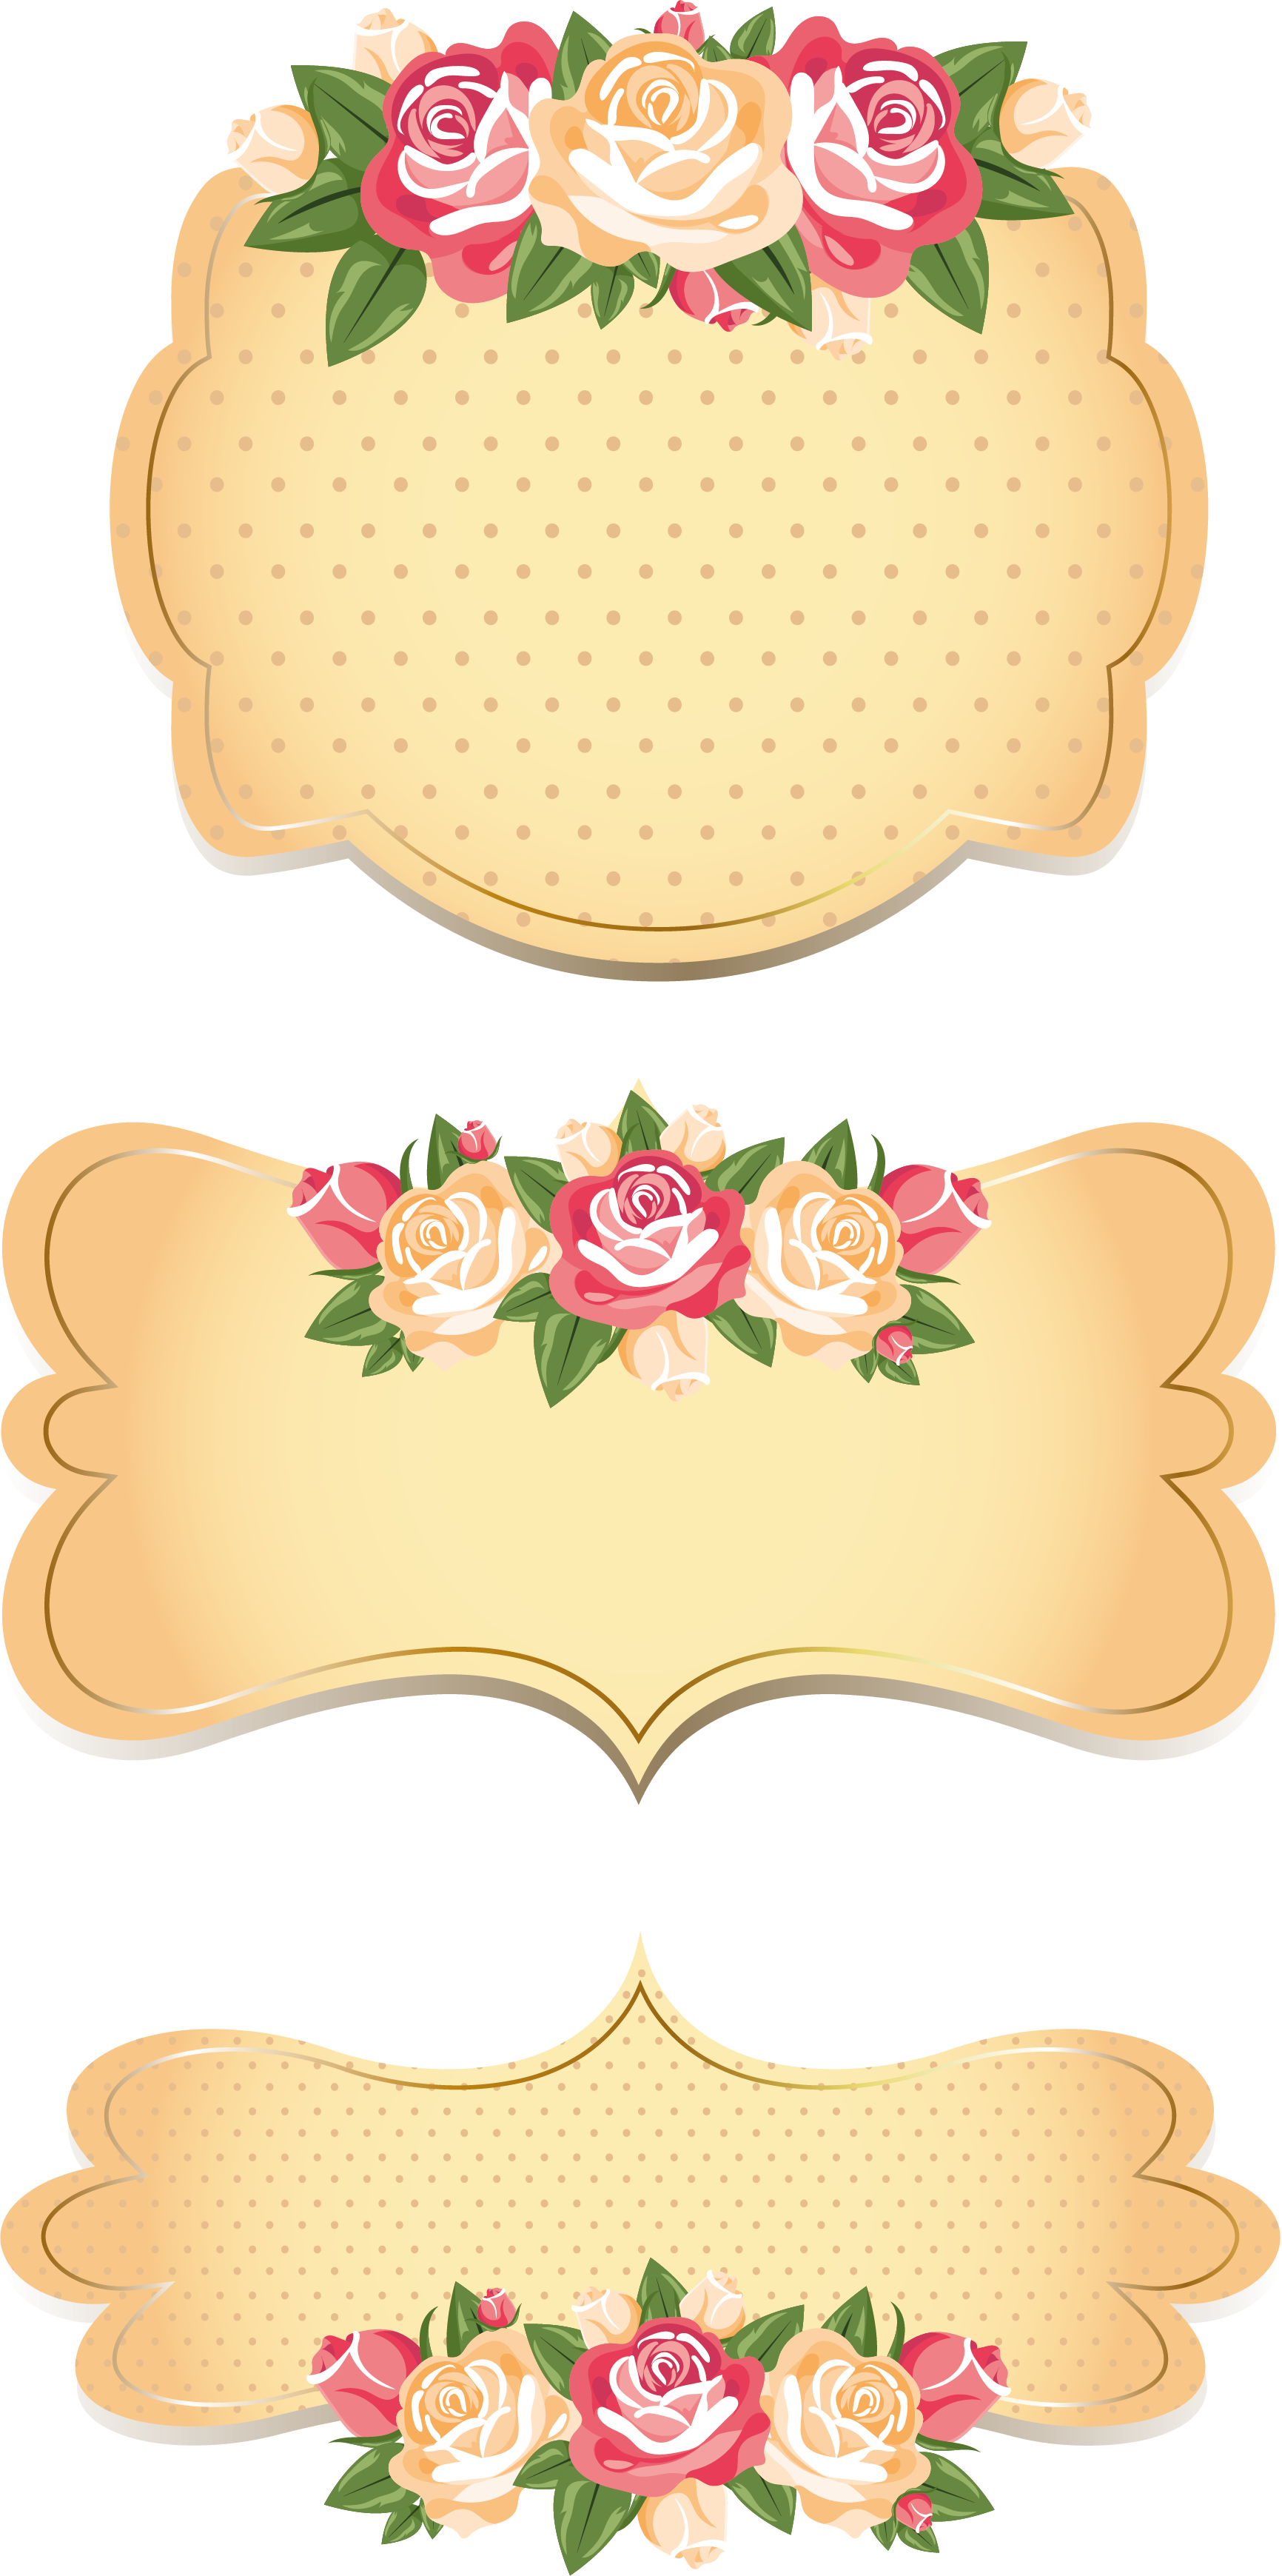 Flower clipart bible. Freedesignfile com floral cards